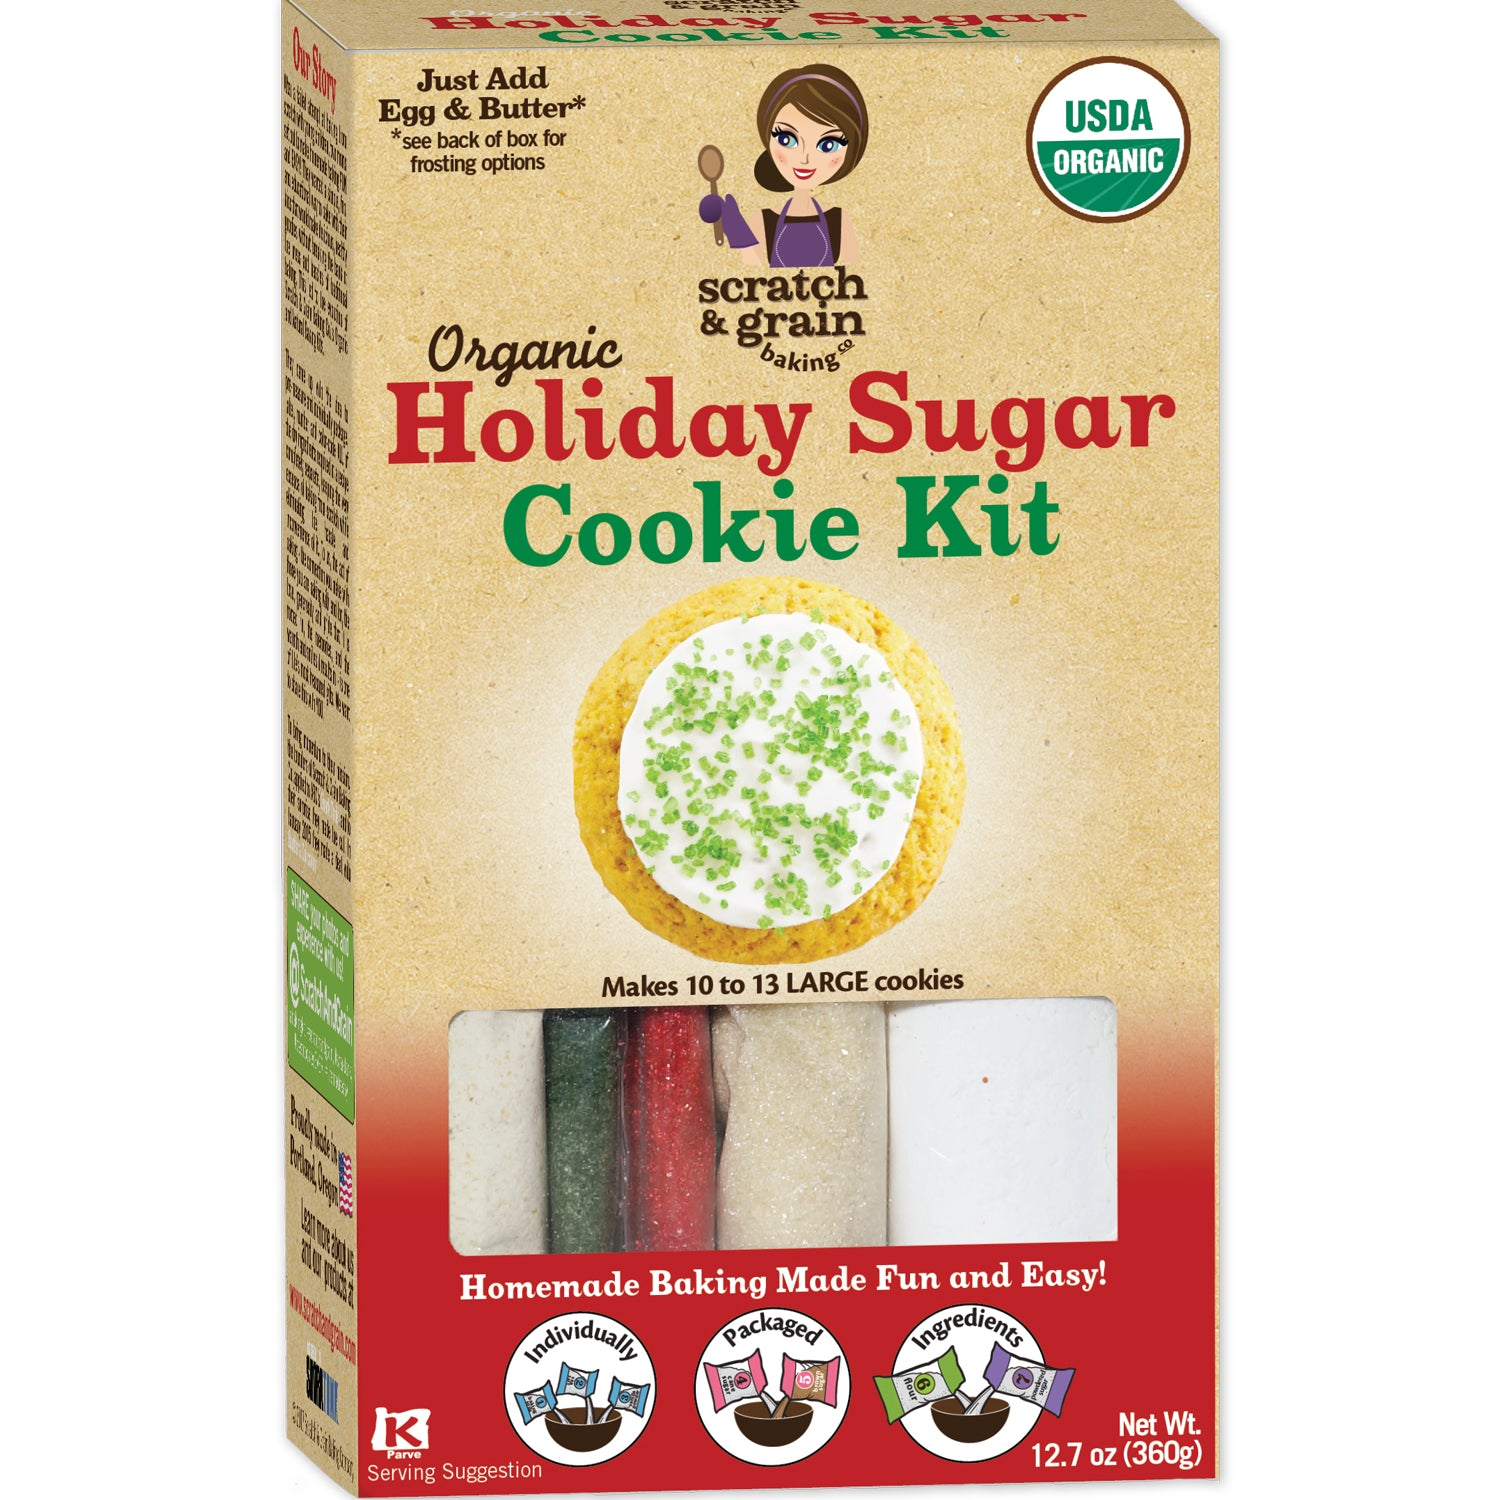 Homemade Baking Holiday Sugar Cookie Kit Scratch Grain Baking Co